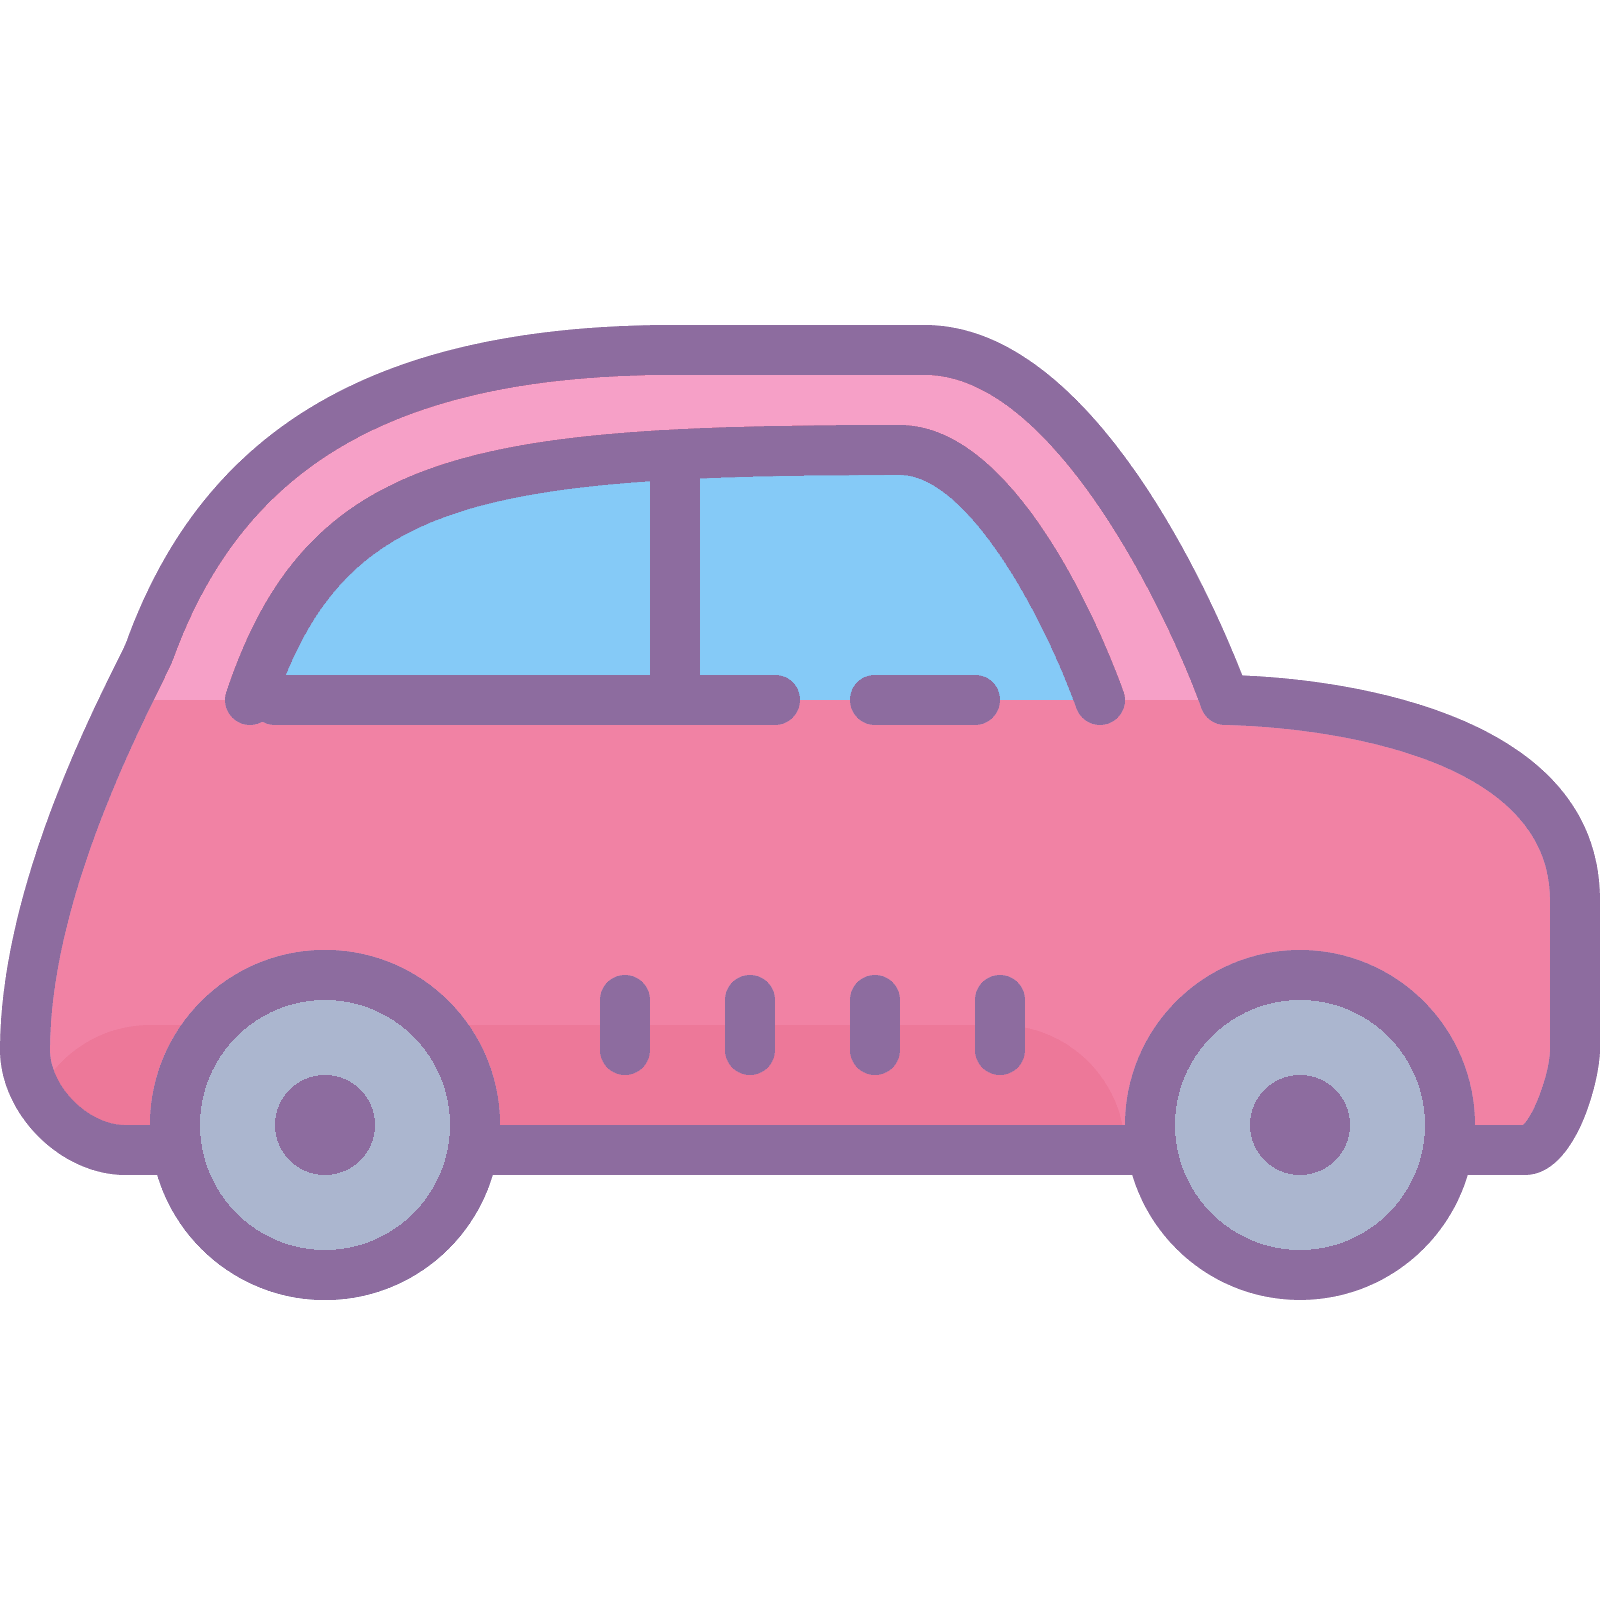 Transportation vector flat. Fiat icon free download